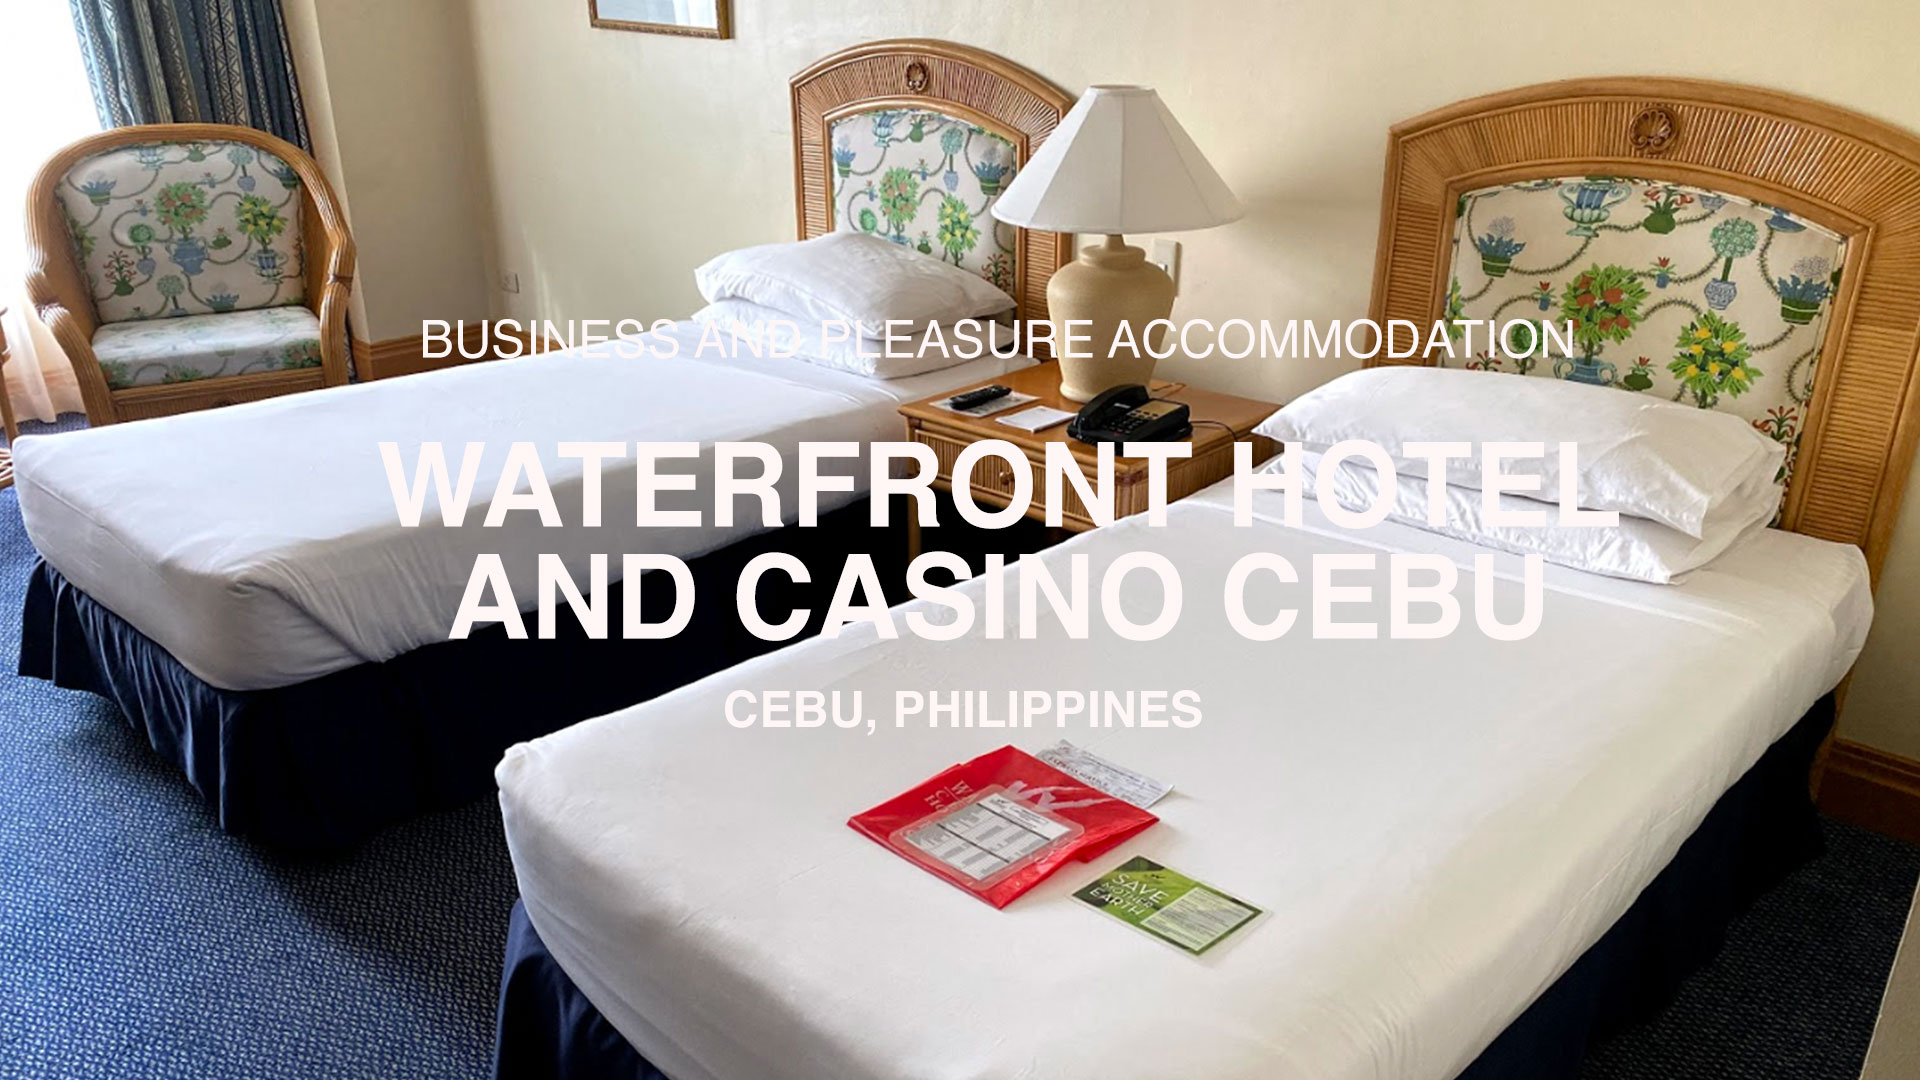 Business and Pleasure Accommodation in Cebu: A Review of the Waterfront Hotel and Casino Cebu